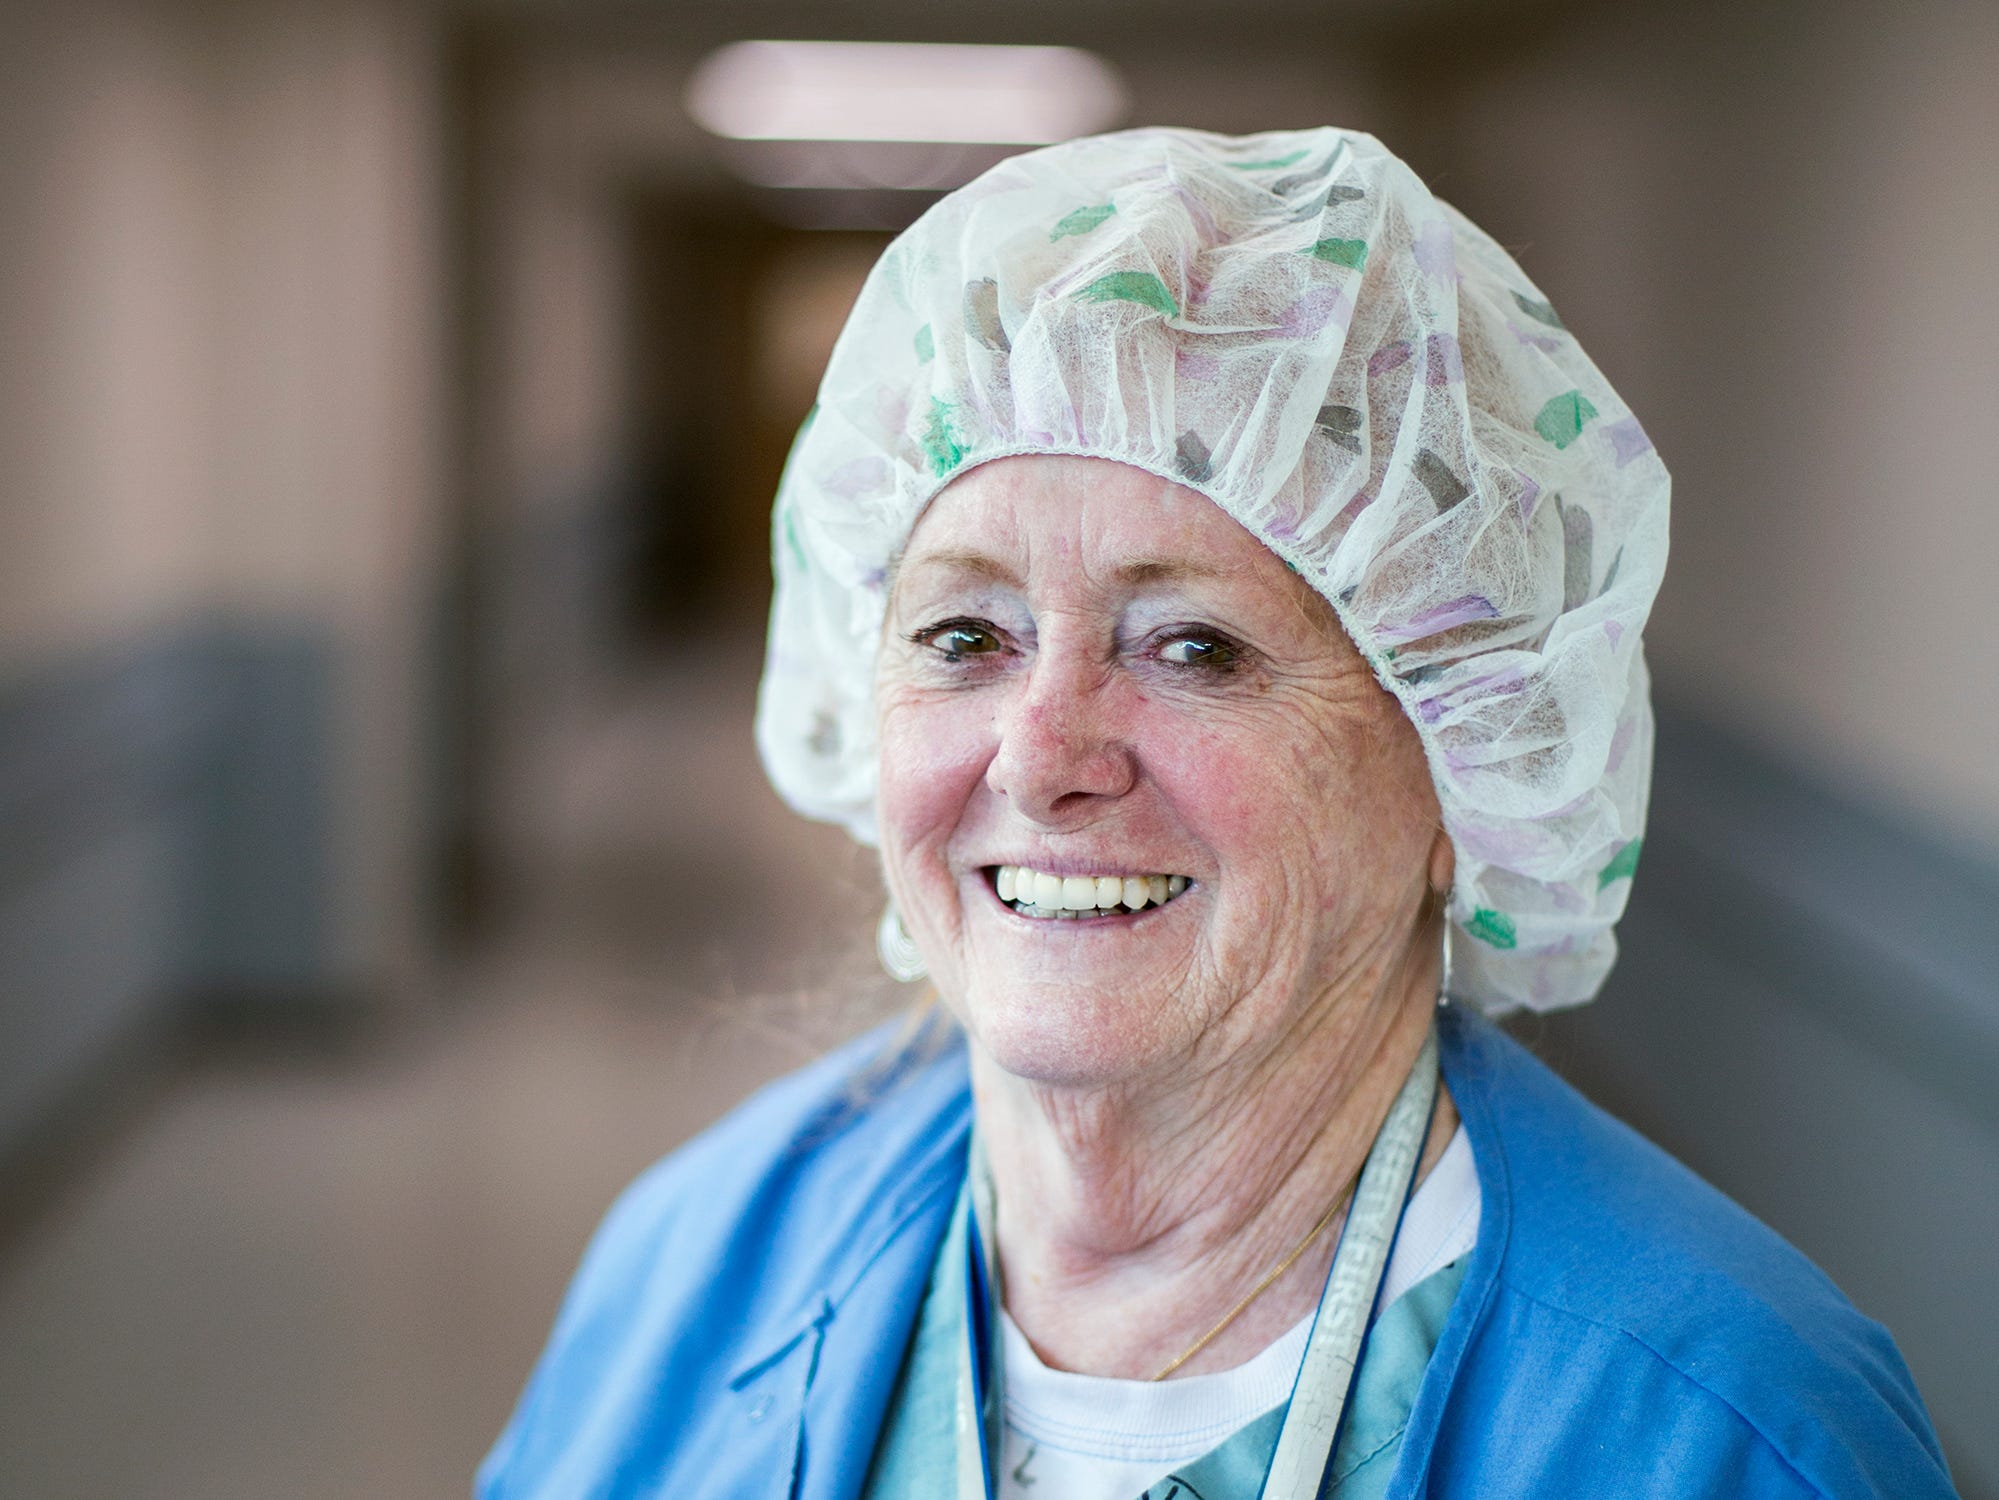 Mickey Donathan, certified registered nurse anesthetist at the Charles George VA Medical Center, stands in the hallway outside the operating wing on one of her last days at work, Thursday, Sept. 20, 2018. Donathan, 76, has been a nurse in the Asheville area for 55 years, serving three hospitals, training hundreds of anesthesia students and caring for thousands upon thousands of patients.